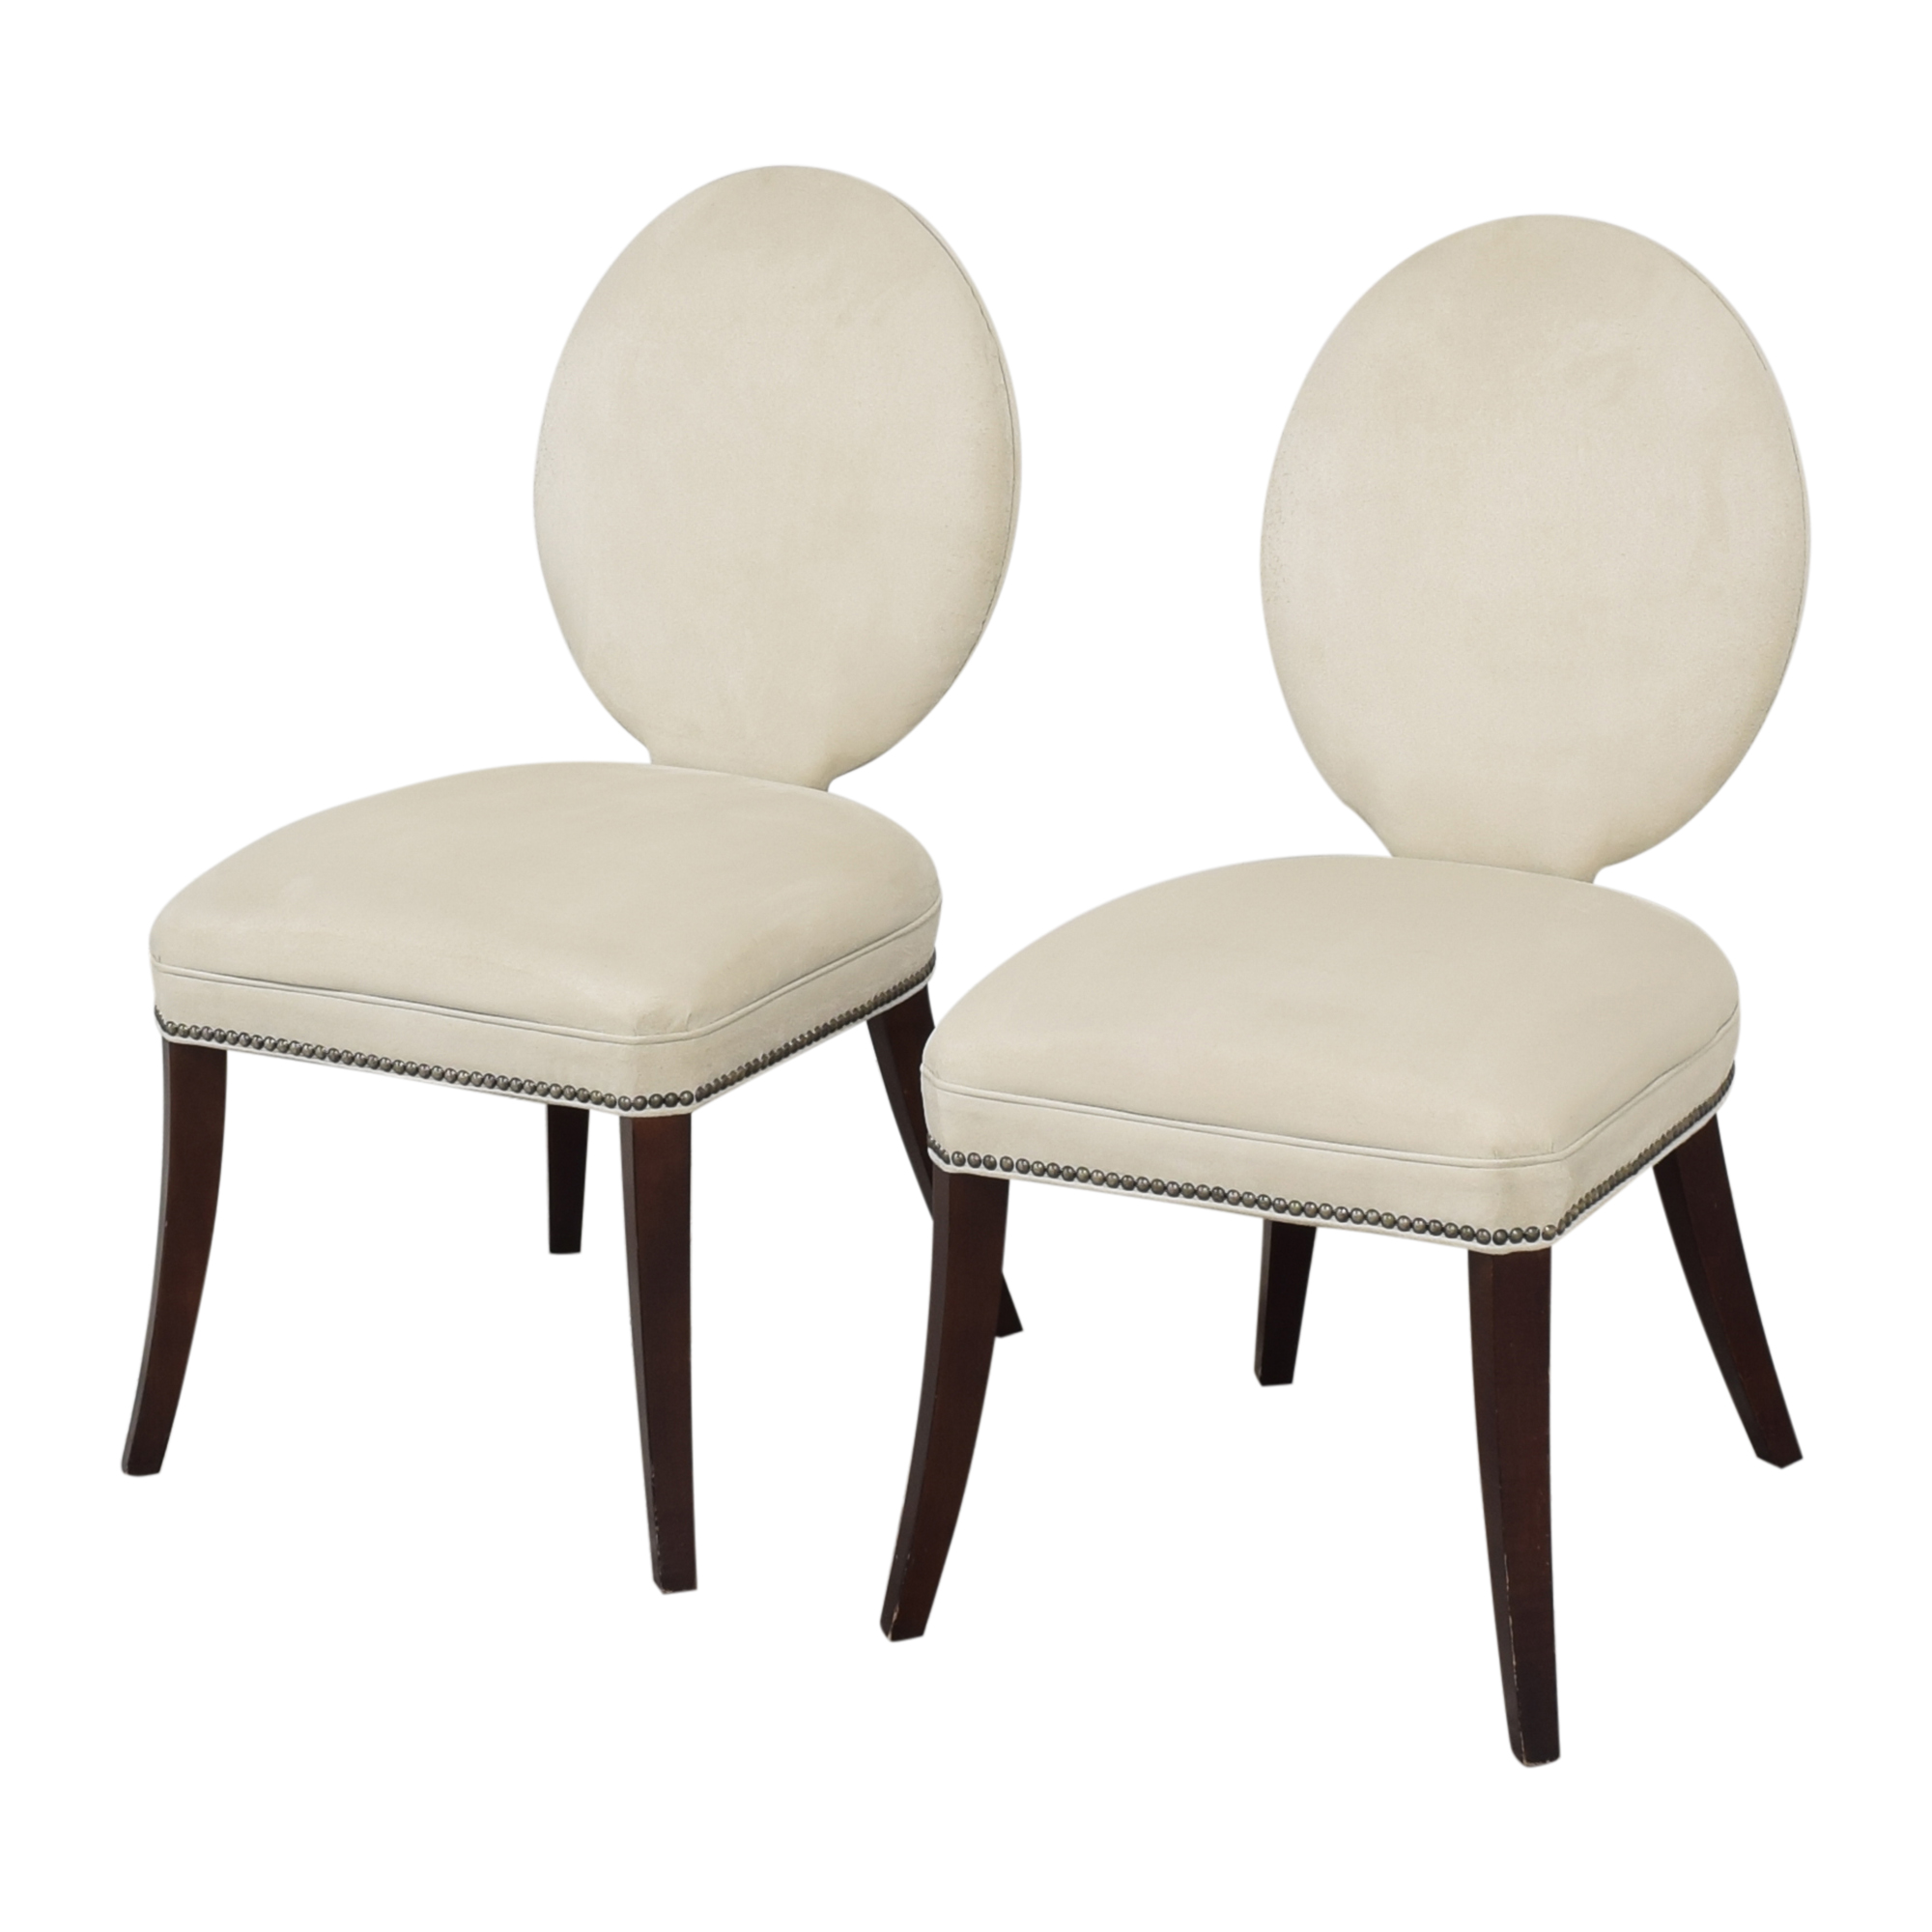 Mitchell Gold + Bob Williams Mitchell Gold + Bob Williams Oval Back Side Chairs dimensions